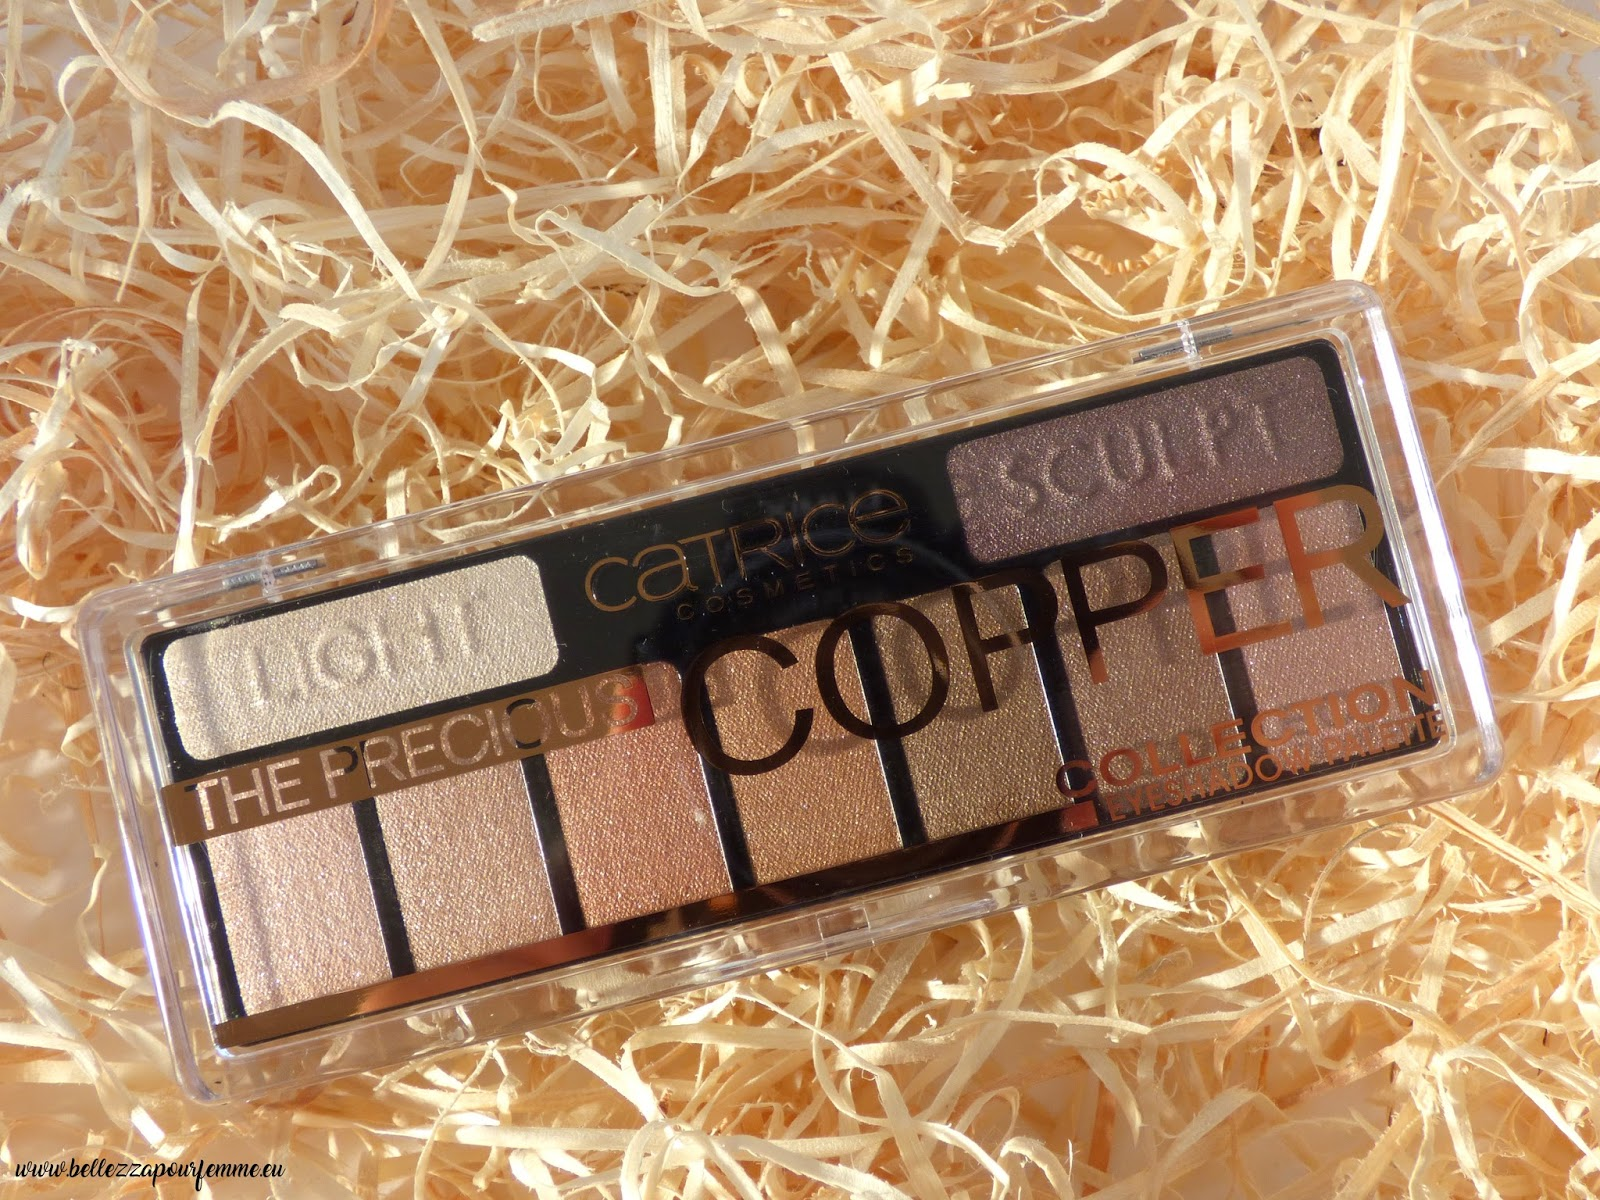 Review CATRICE The Precious COPPER Eyeshadow Palette